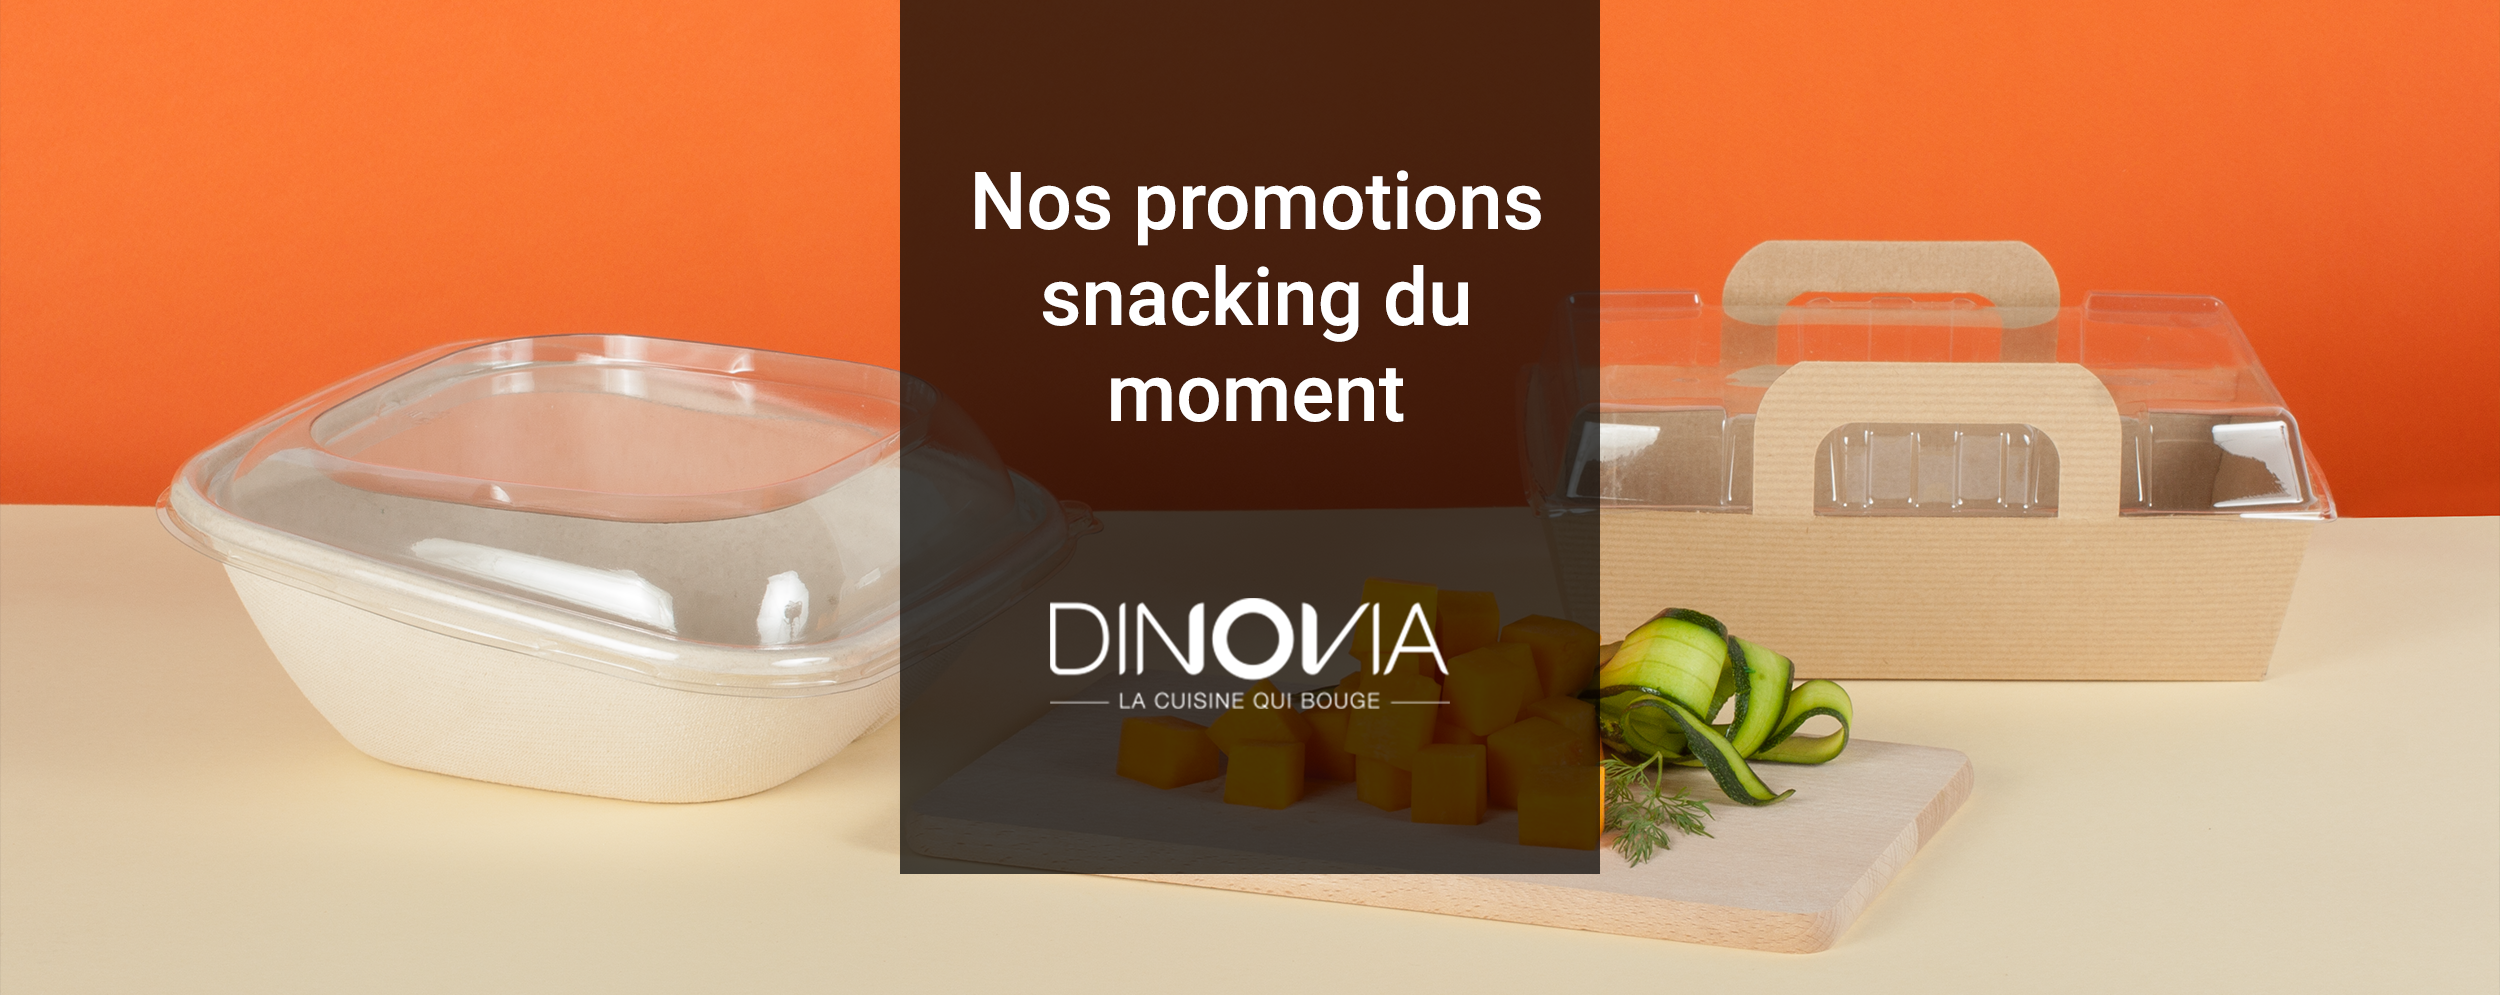 Nos promotions snacking